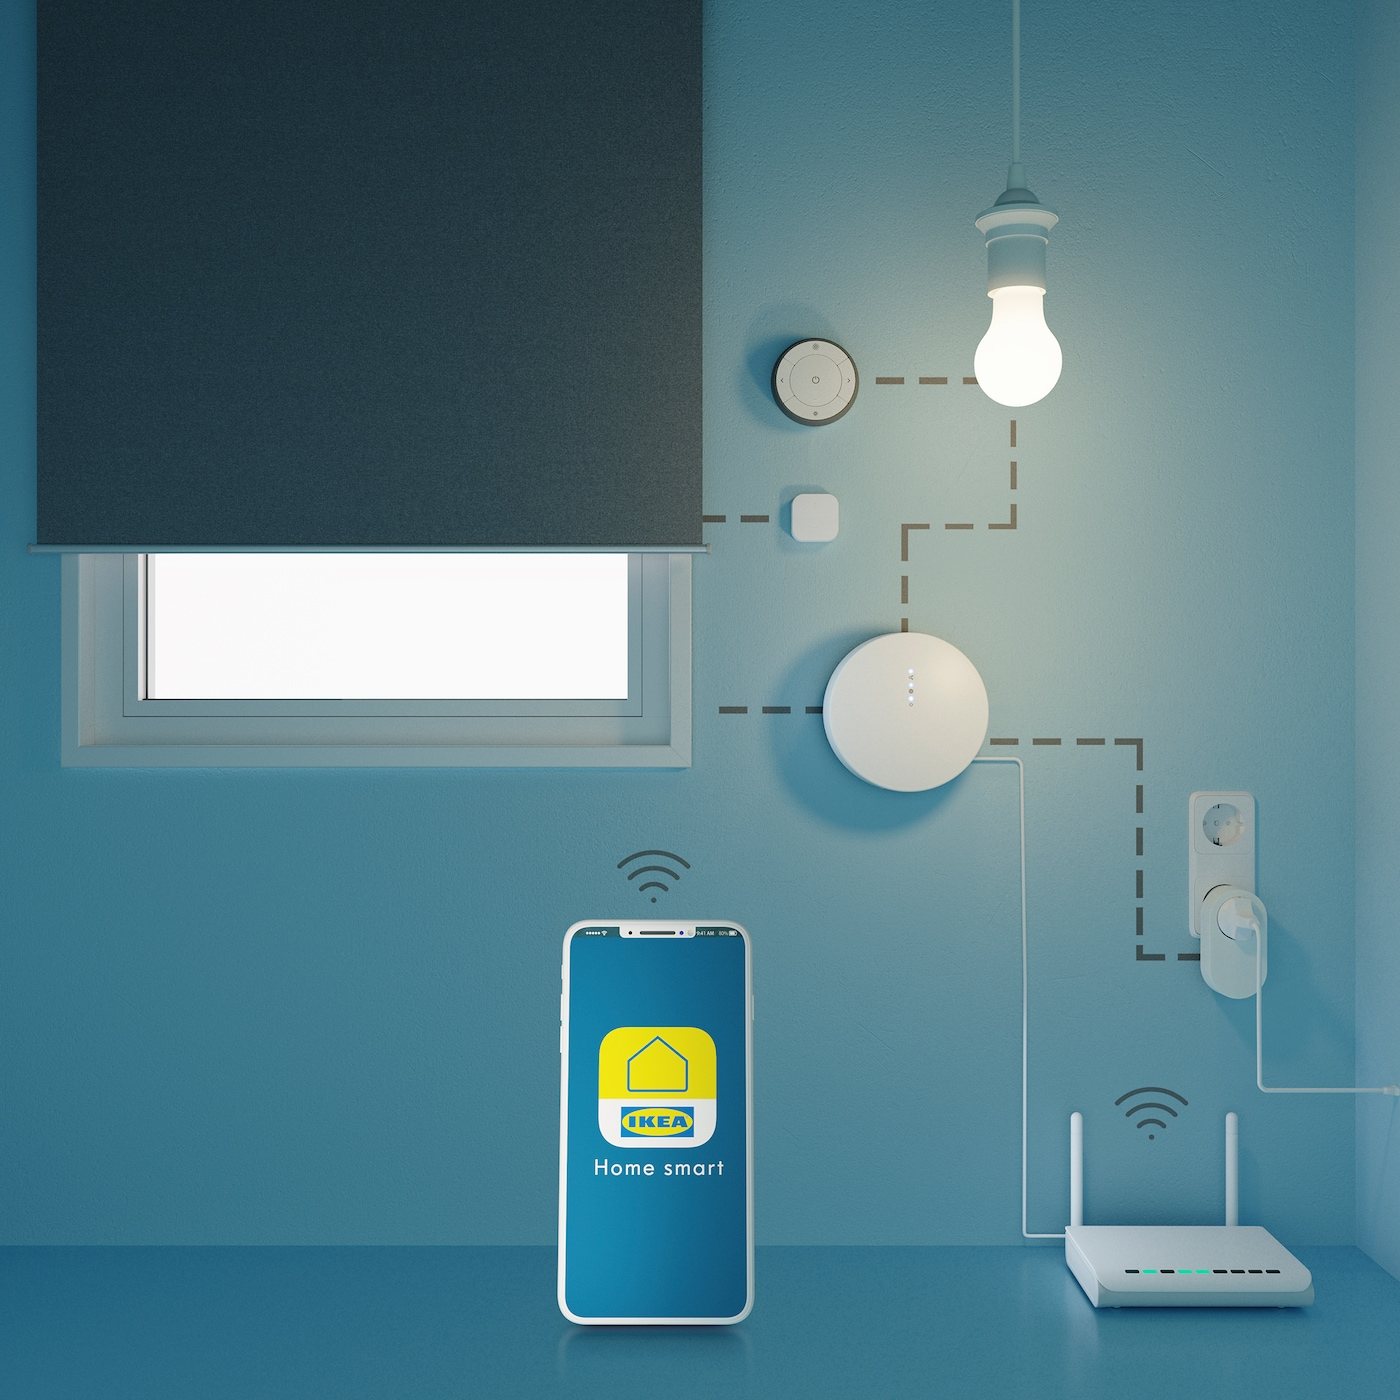 Link to 'Smart products support' - visual overview of the connections in an IKEA Home smart set-up.